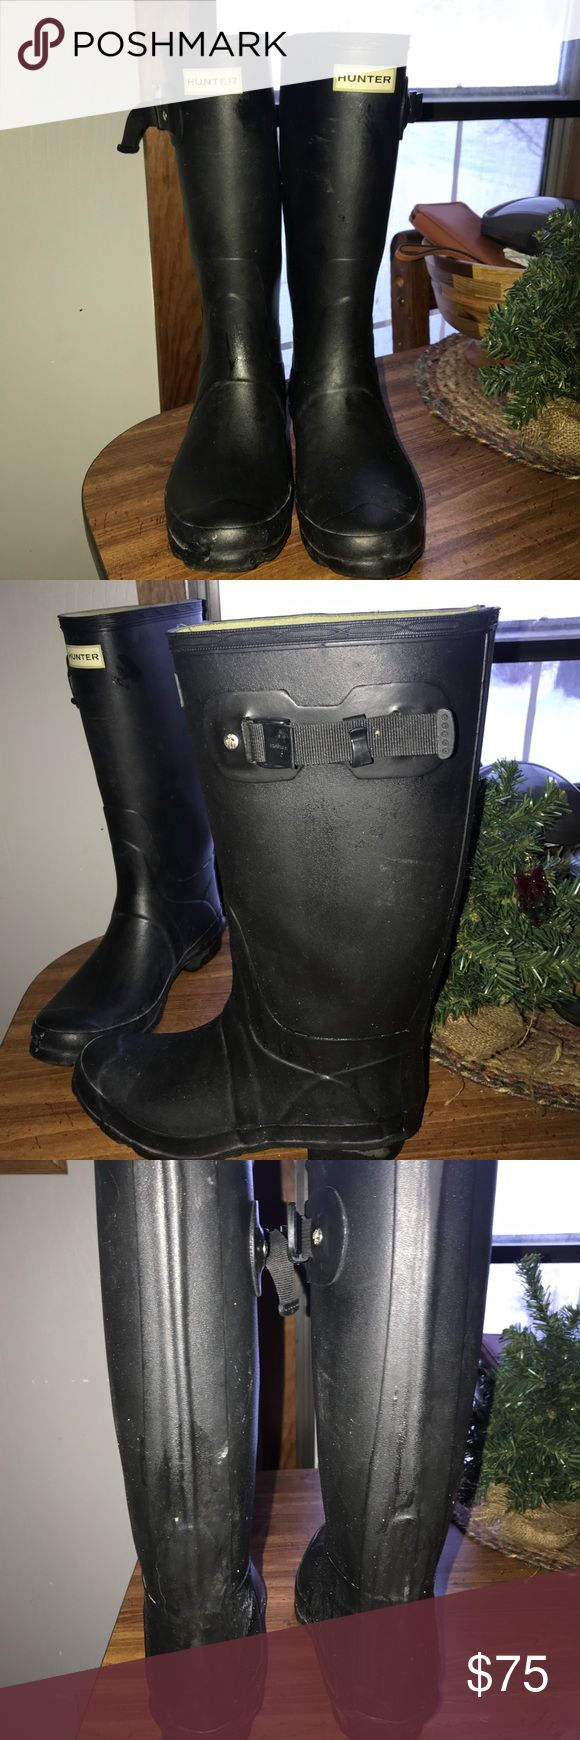 Huntress boots Wide calf hunter boots, in excellent condition just a small tare on the inside as the picture shows. Still plenty of wear left! Hunter Boots Shoes Winter & Rain Boots